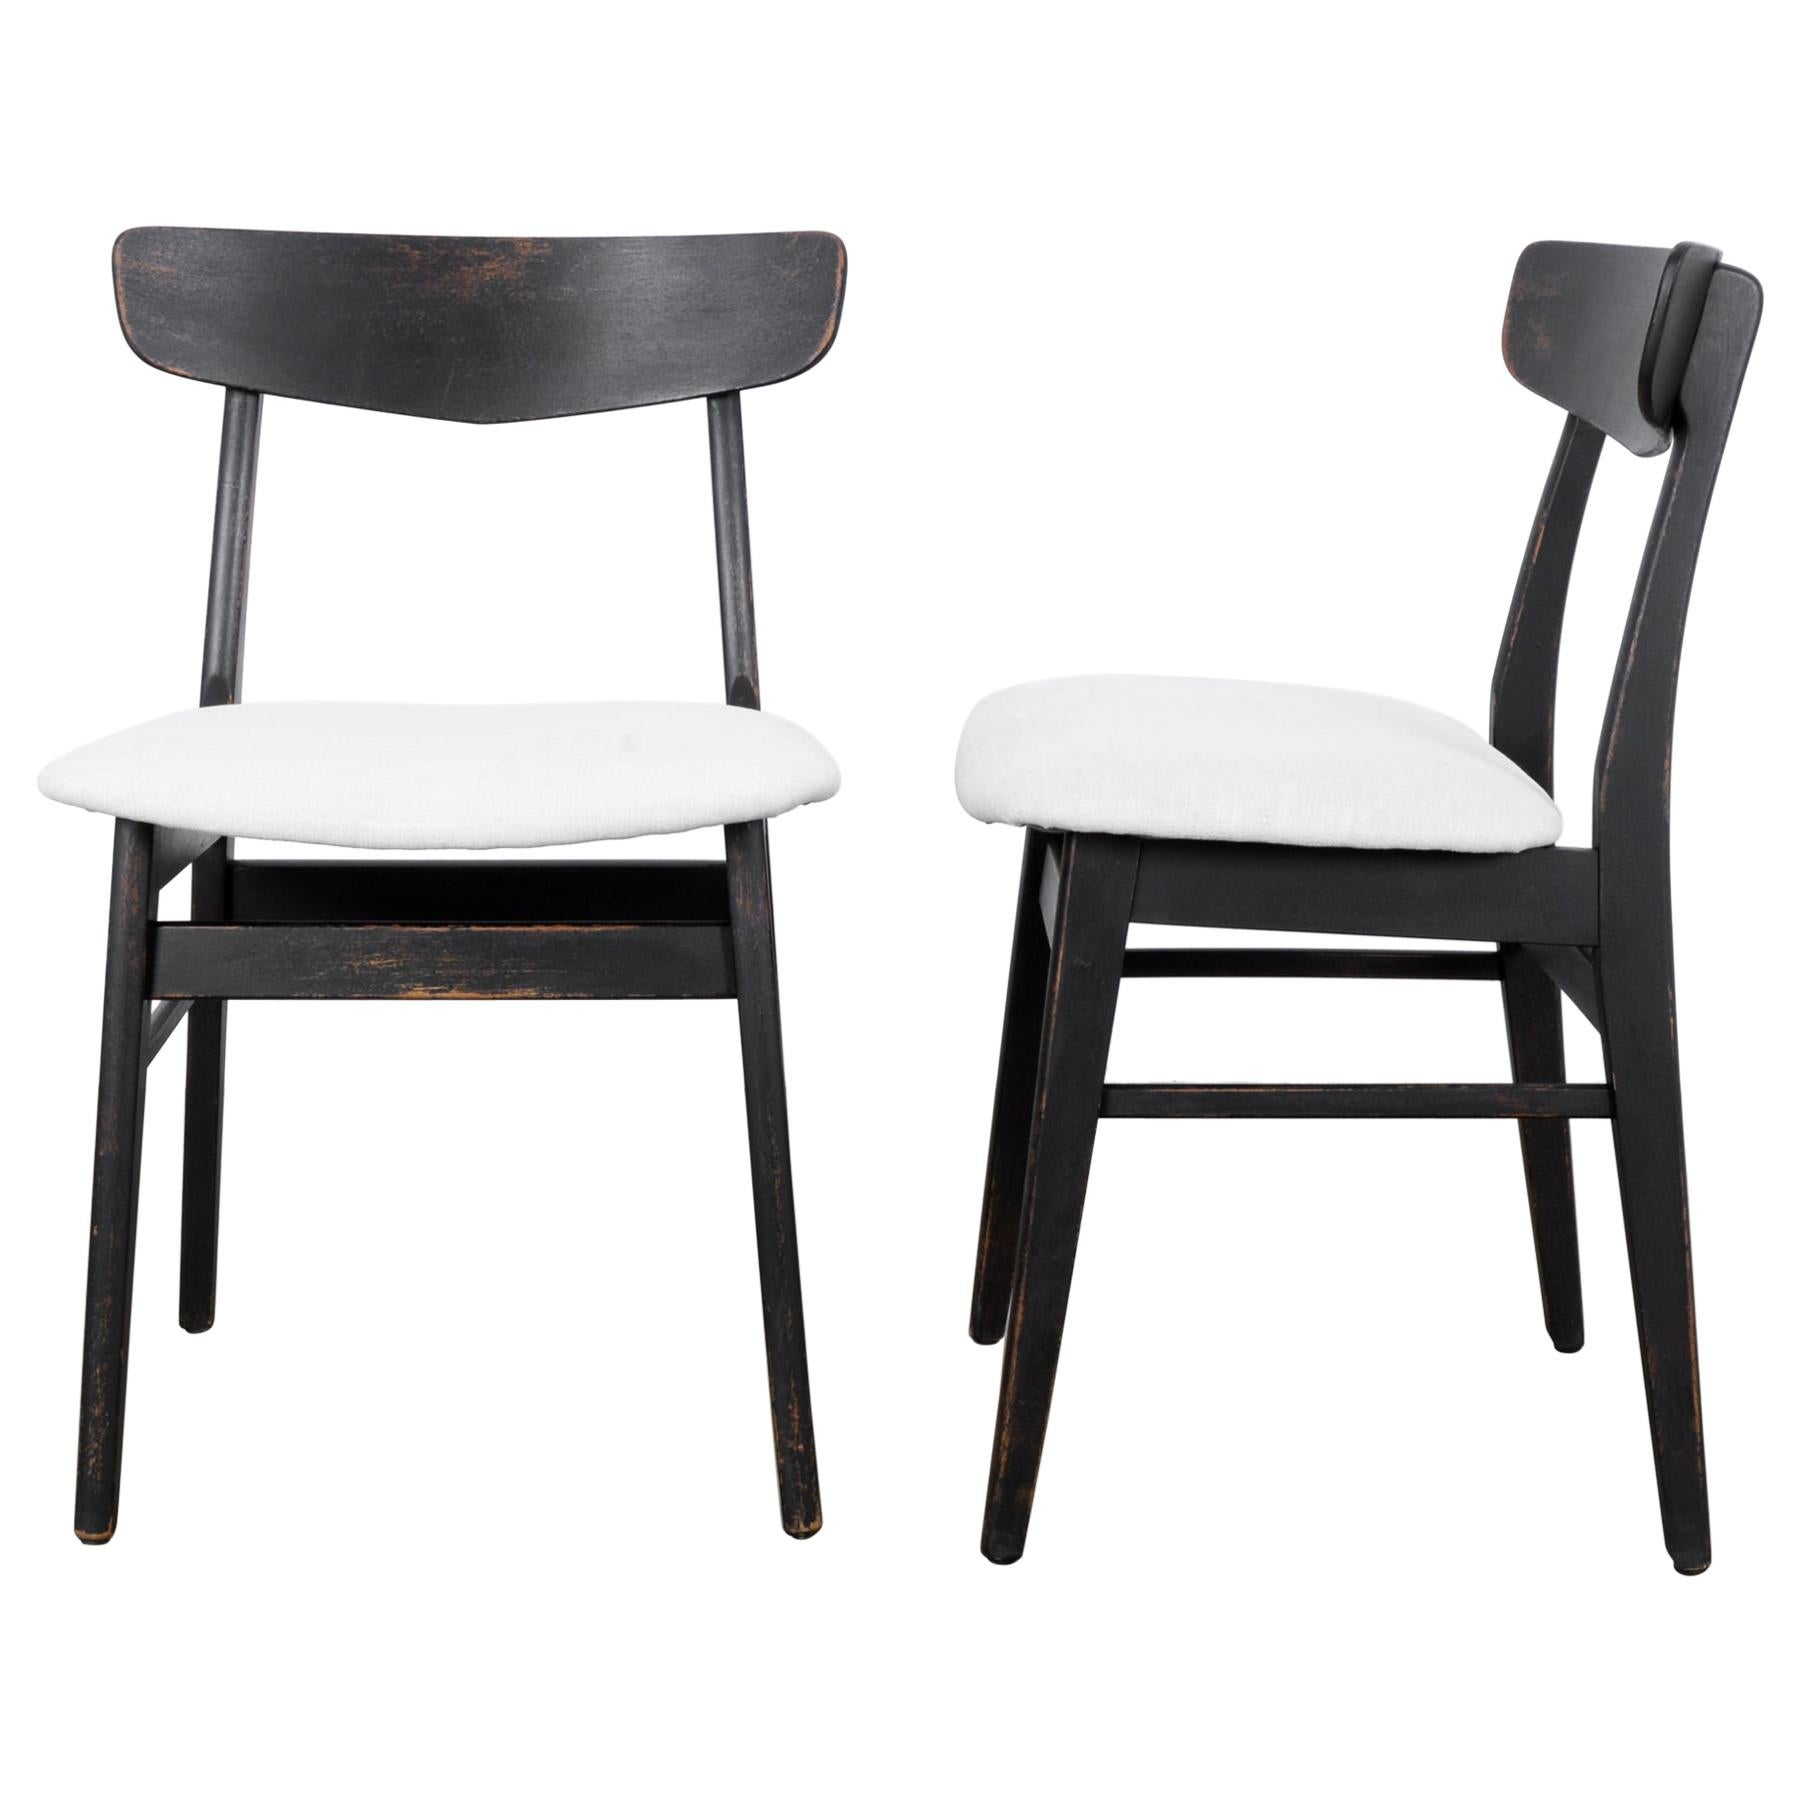 1960s Danish Upholstered Black Chairs, a Pair